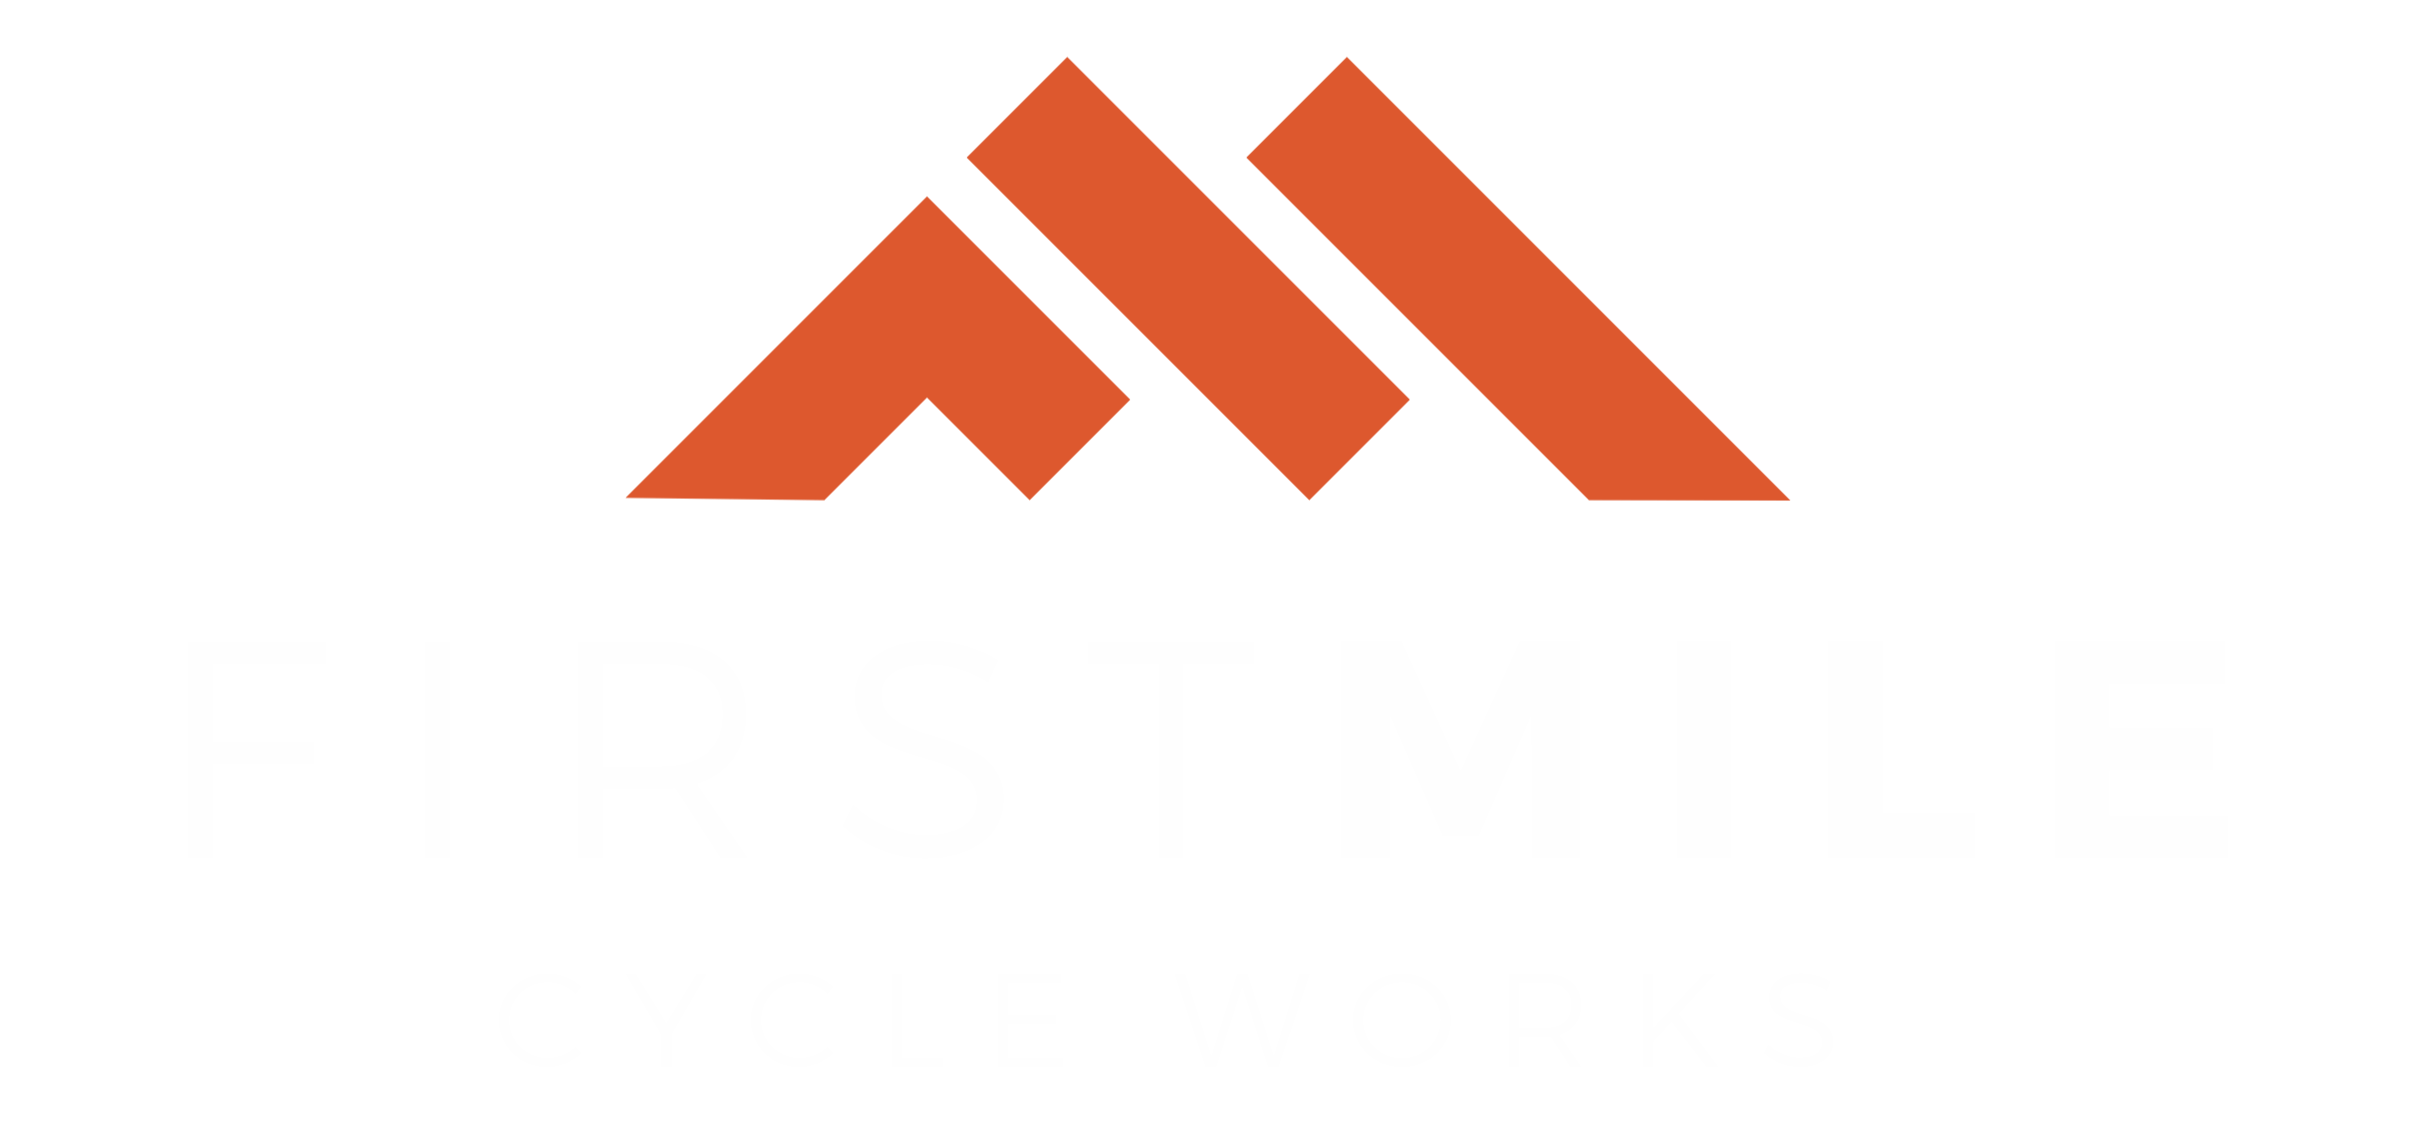 First Mile Cycle Works Home Page